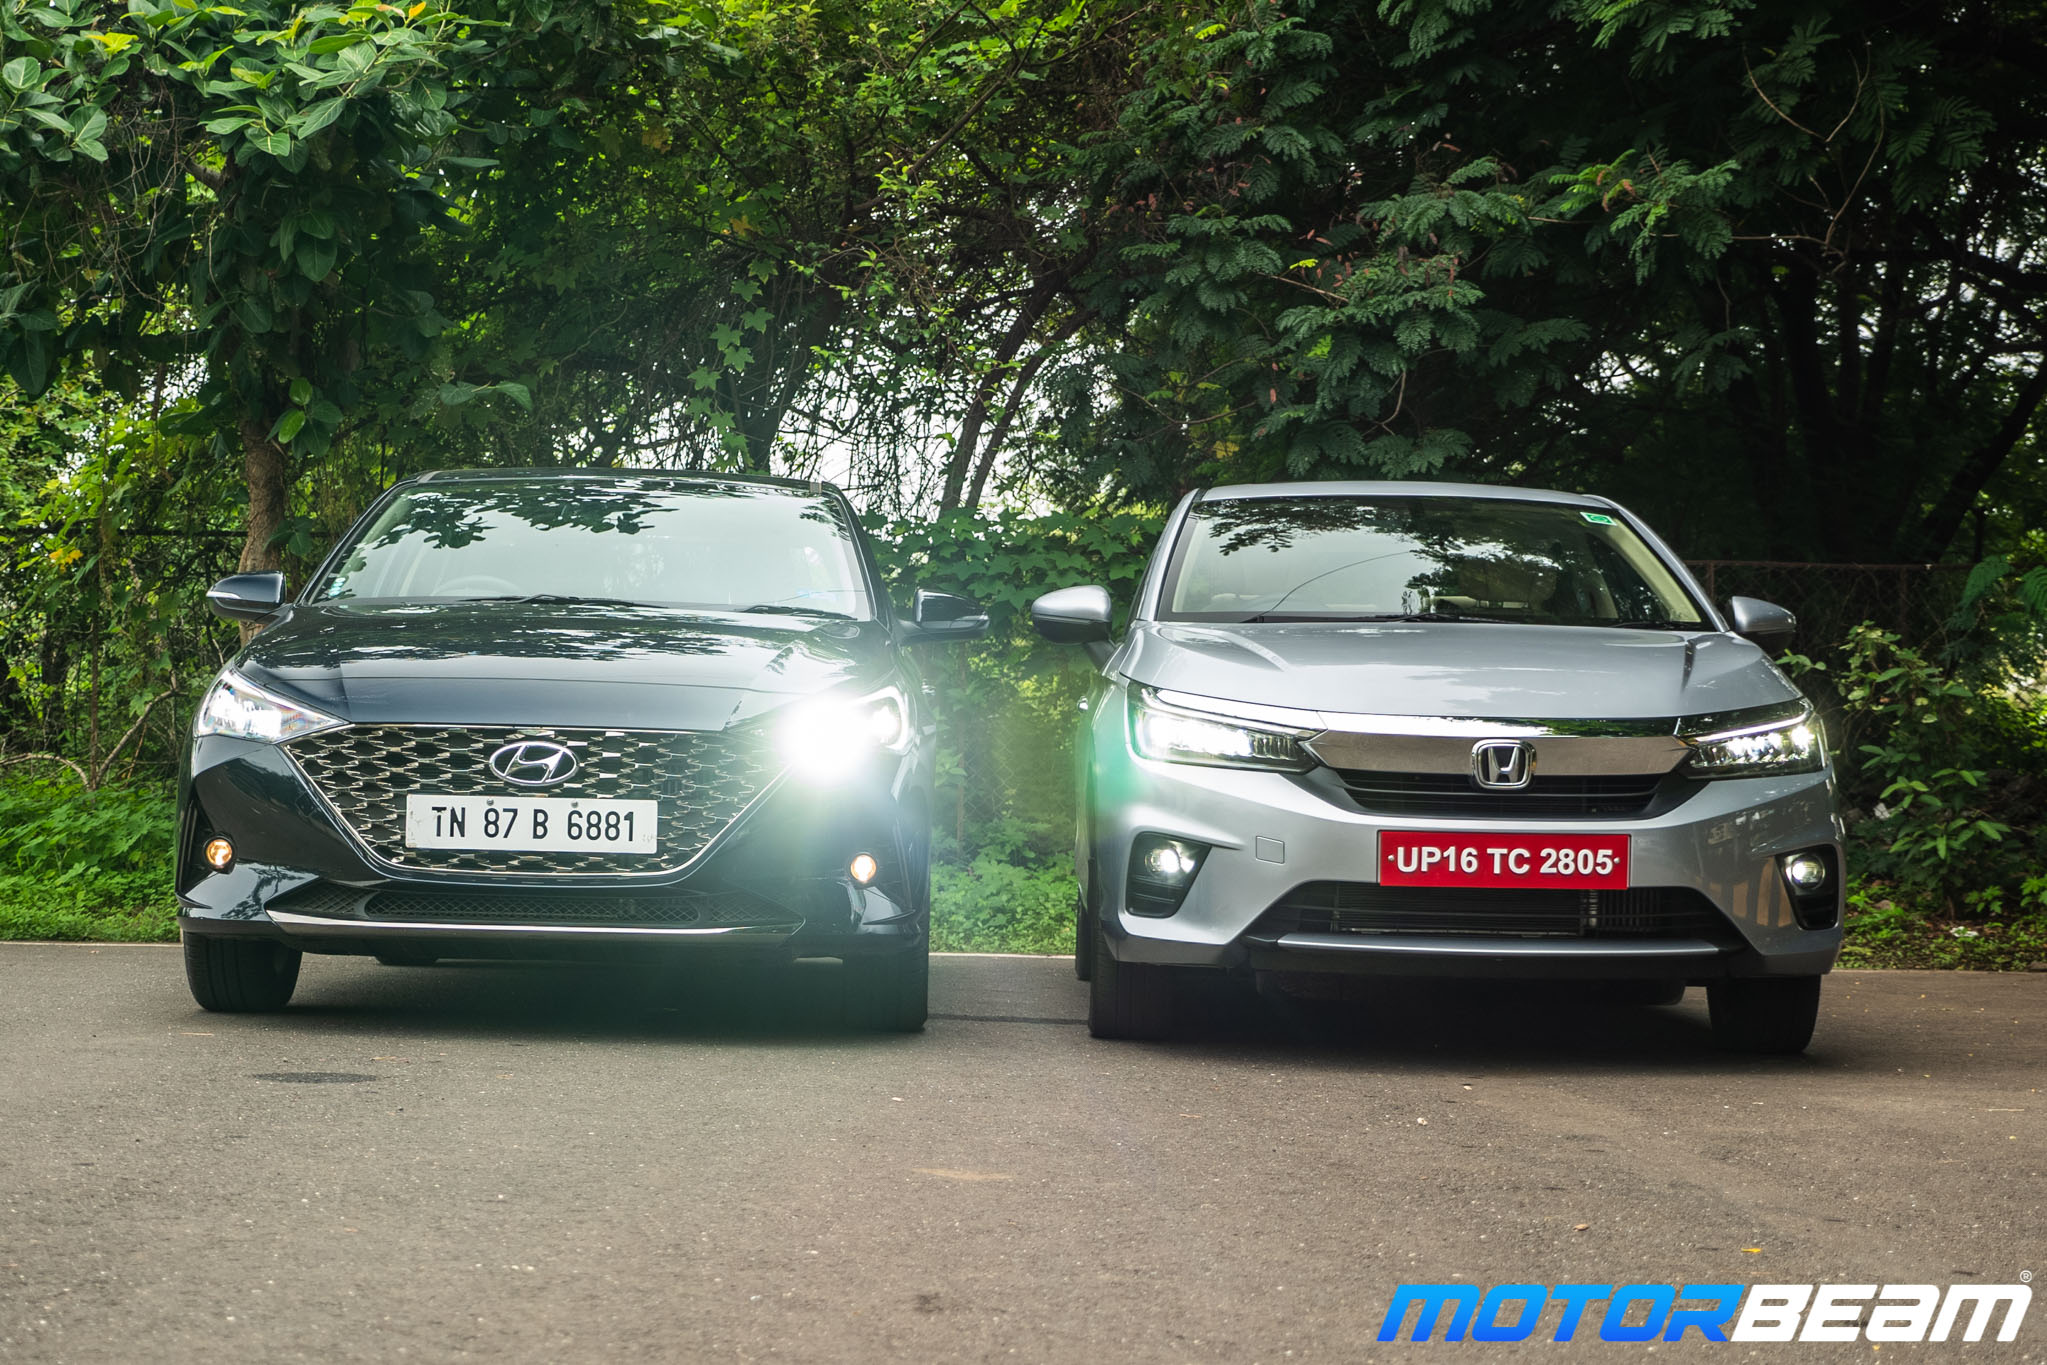 2020-Honda-City-vs-Hyundai-Verna-2